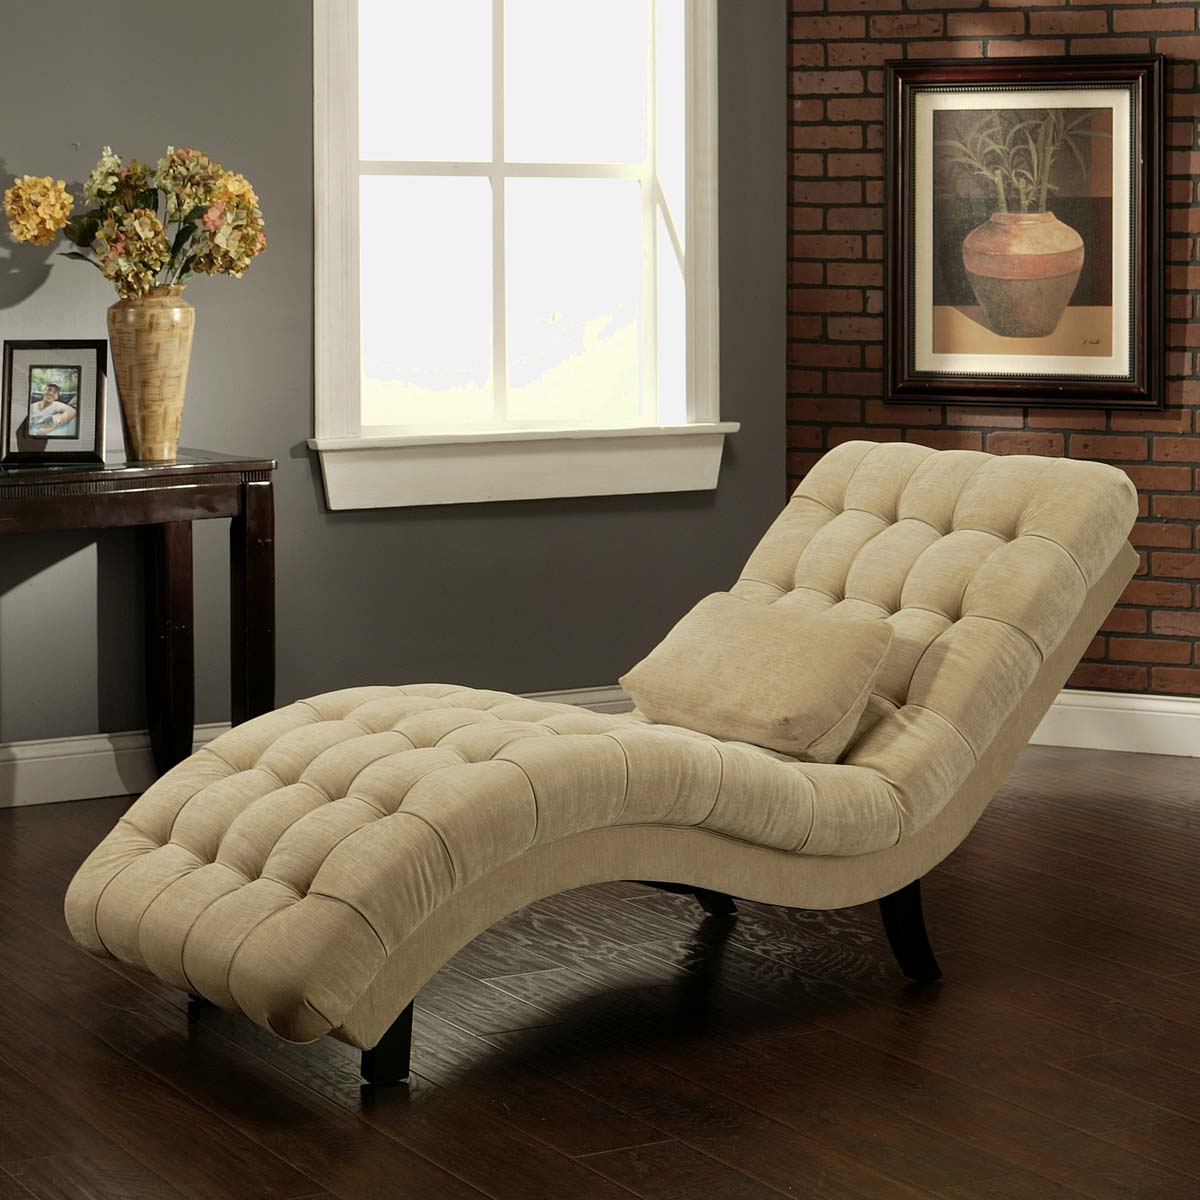 Abbyson living soho cream fabric chaise ab hs sf 250 bge for Abbyson living soho cream fabric chaise